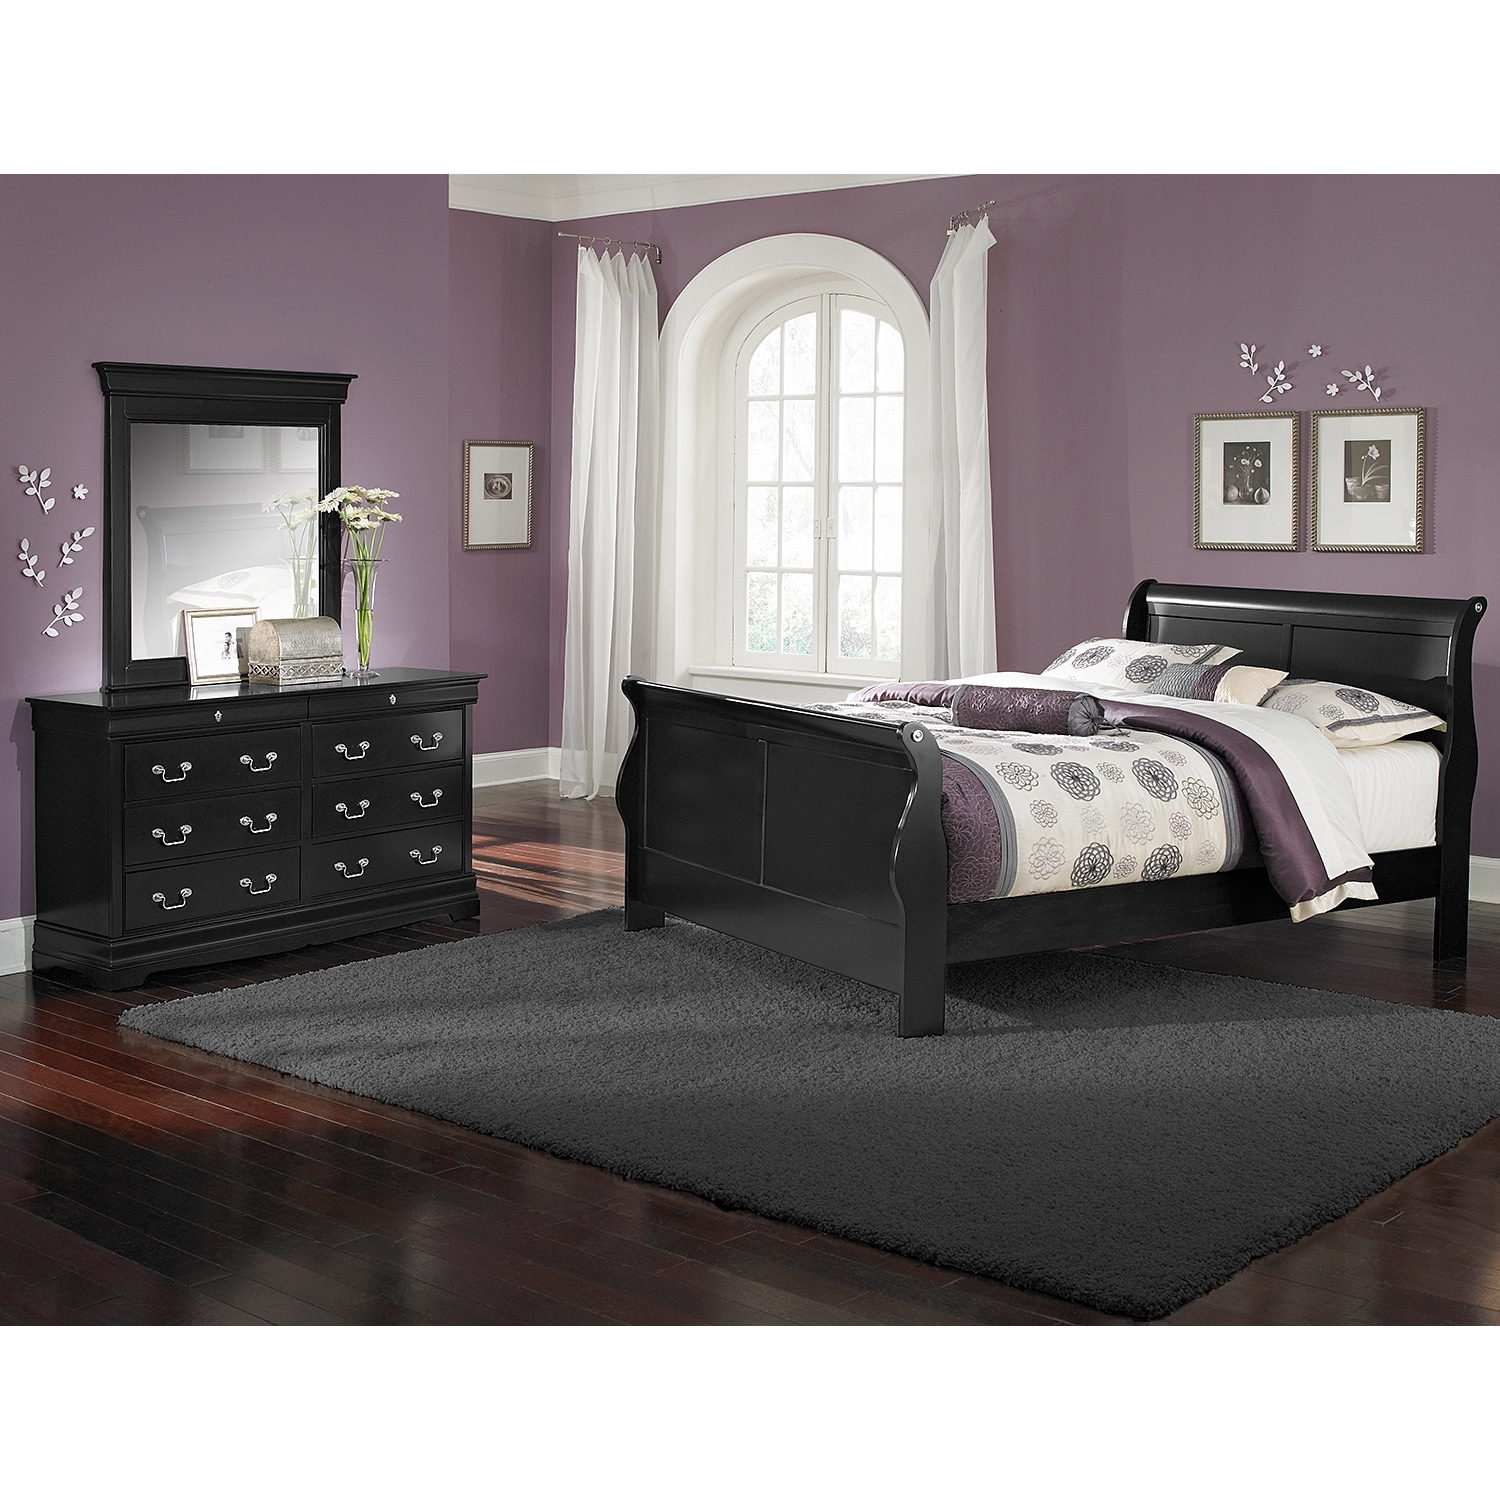 Value city furniture for Full bedroom furniture sets